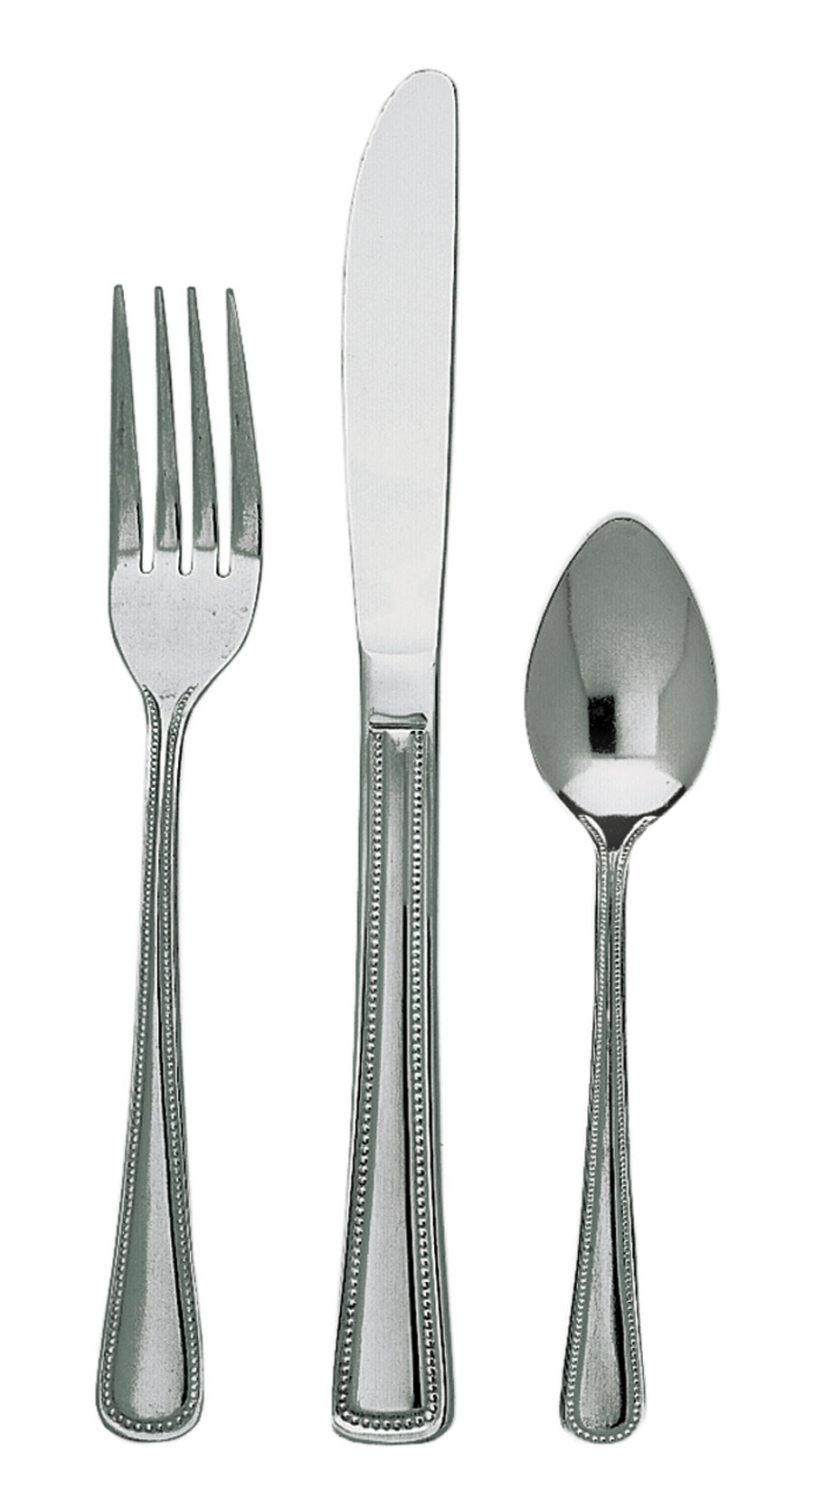 Update International HL-402 Harbor-Lite Bouillon Spoon - 1 doz